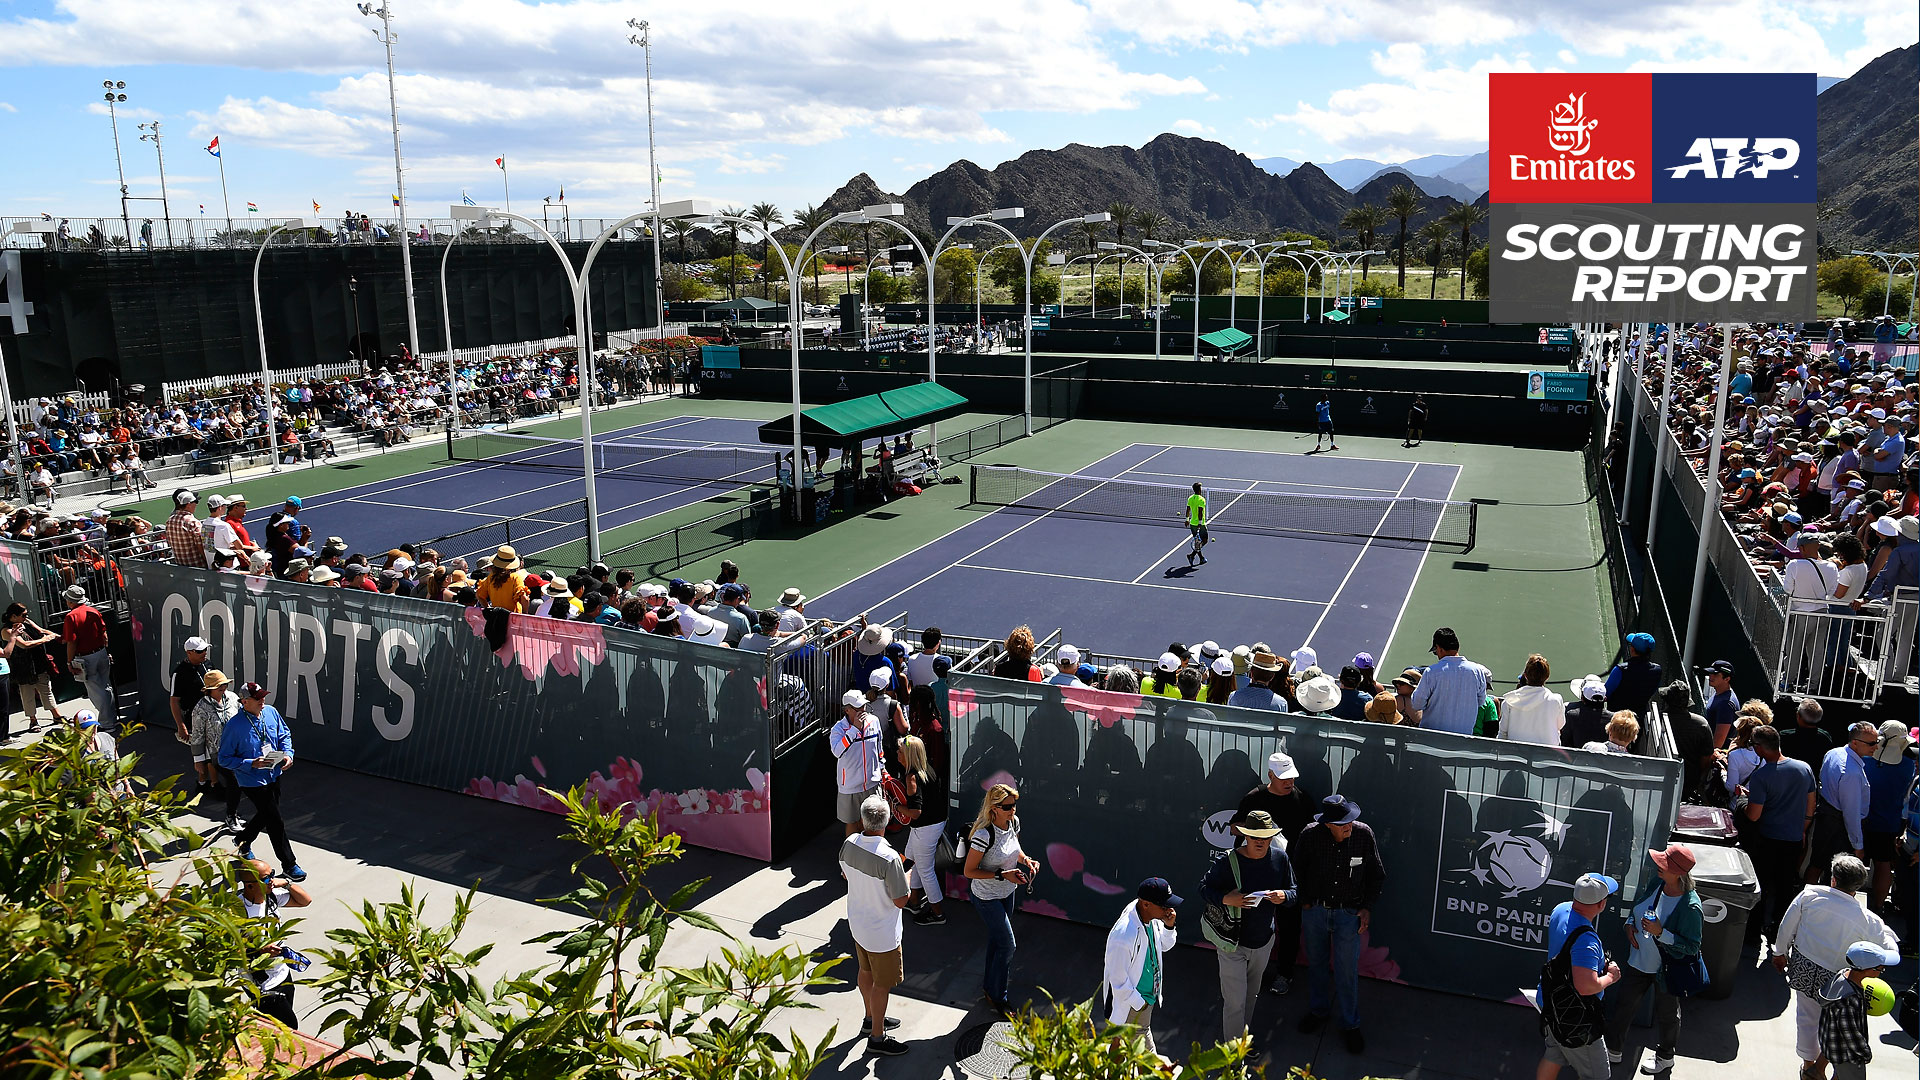 A view of practice courts at the Indian Wells Tennis Garden, venue of the BNP Paribas Open.